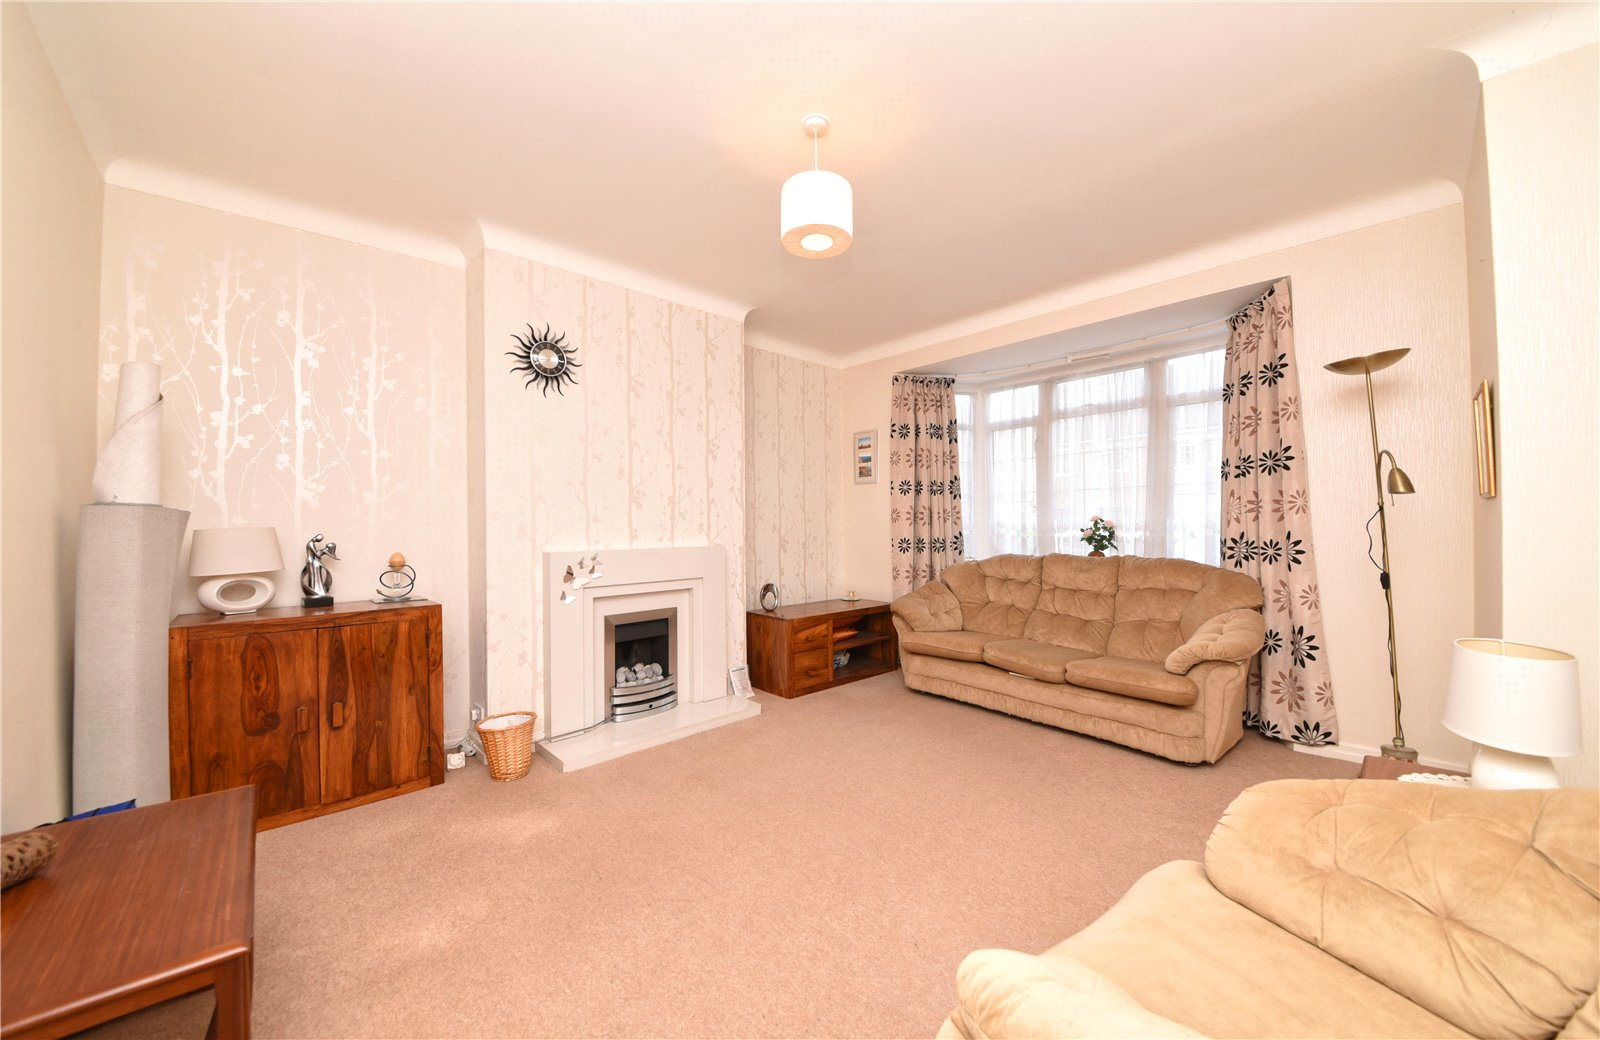 3 bed house for sale in London, N12 9ND  - Property Image 8